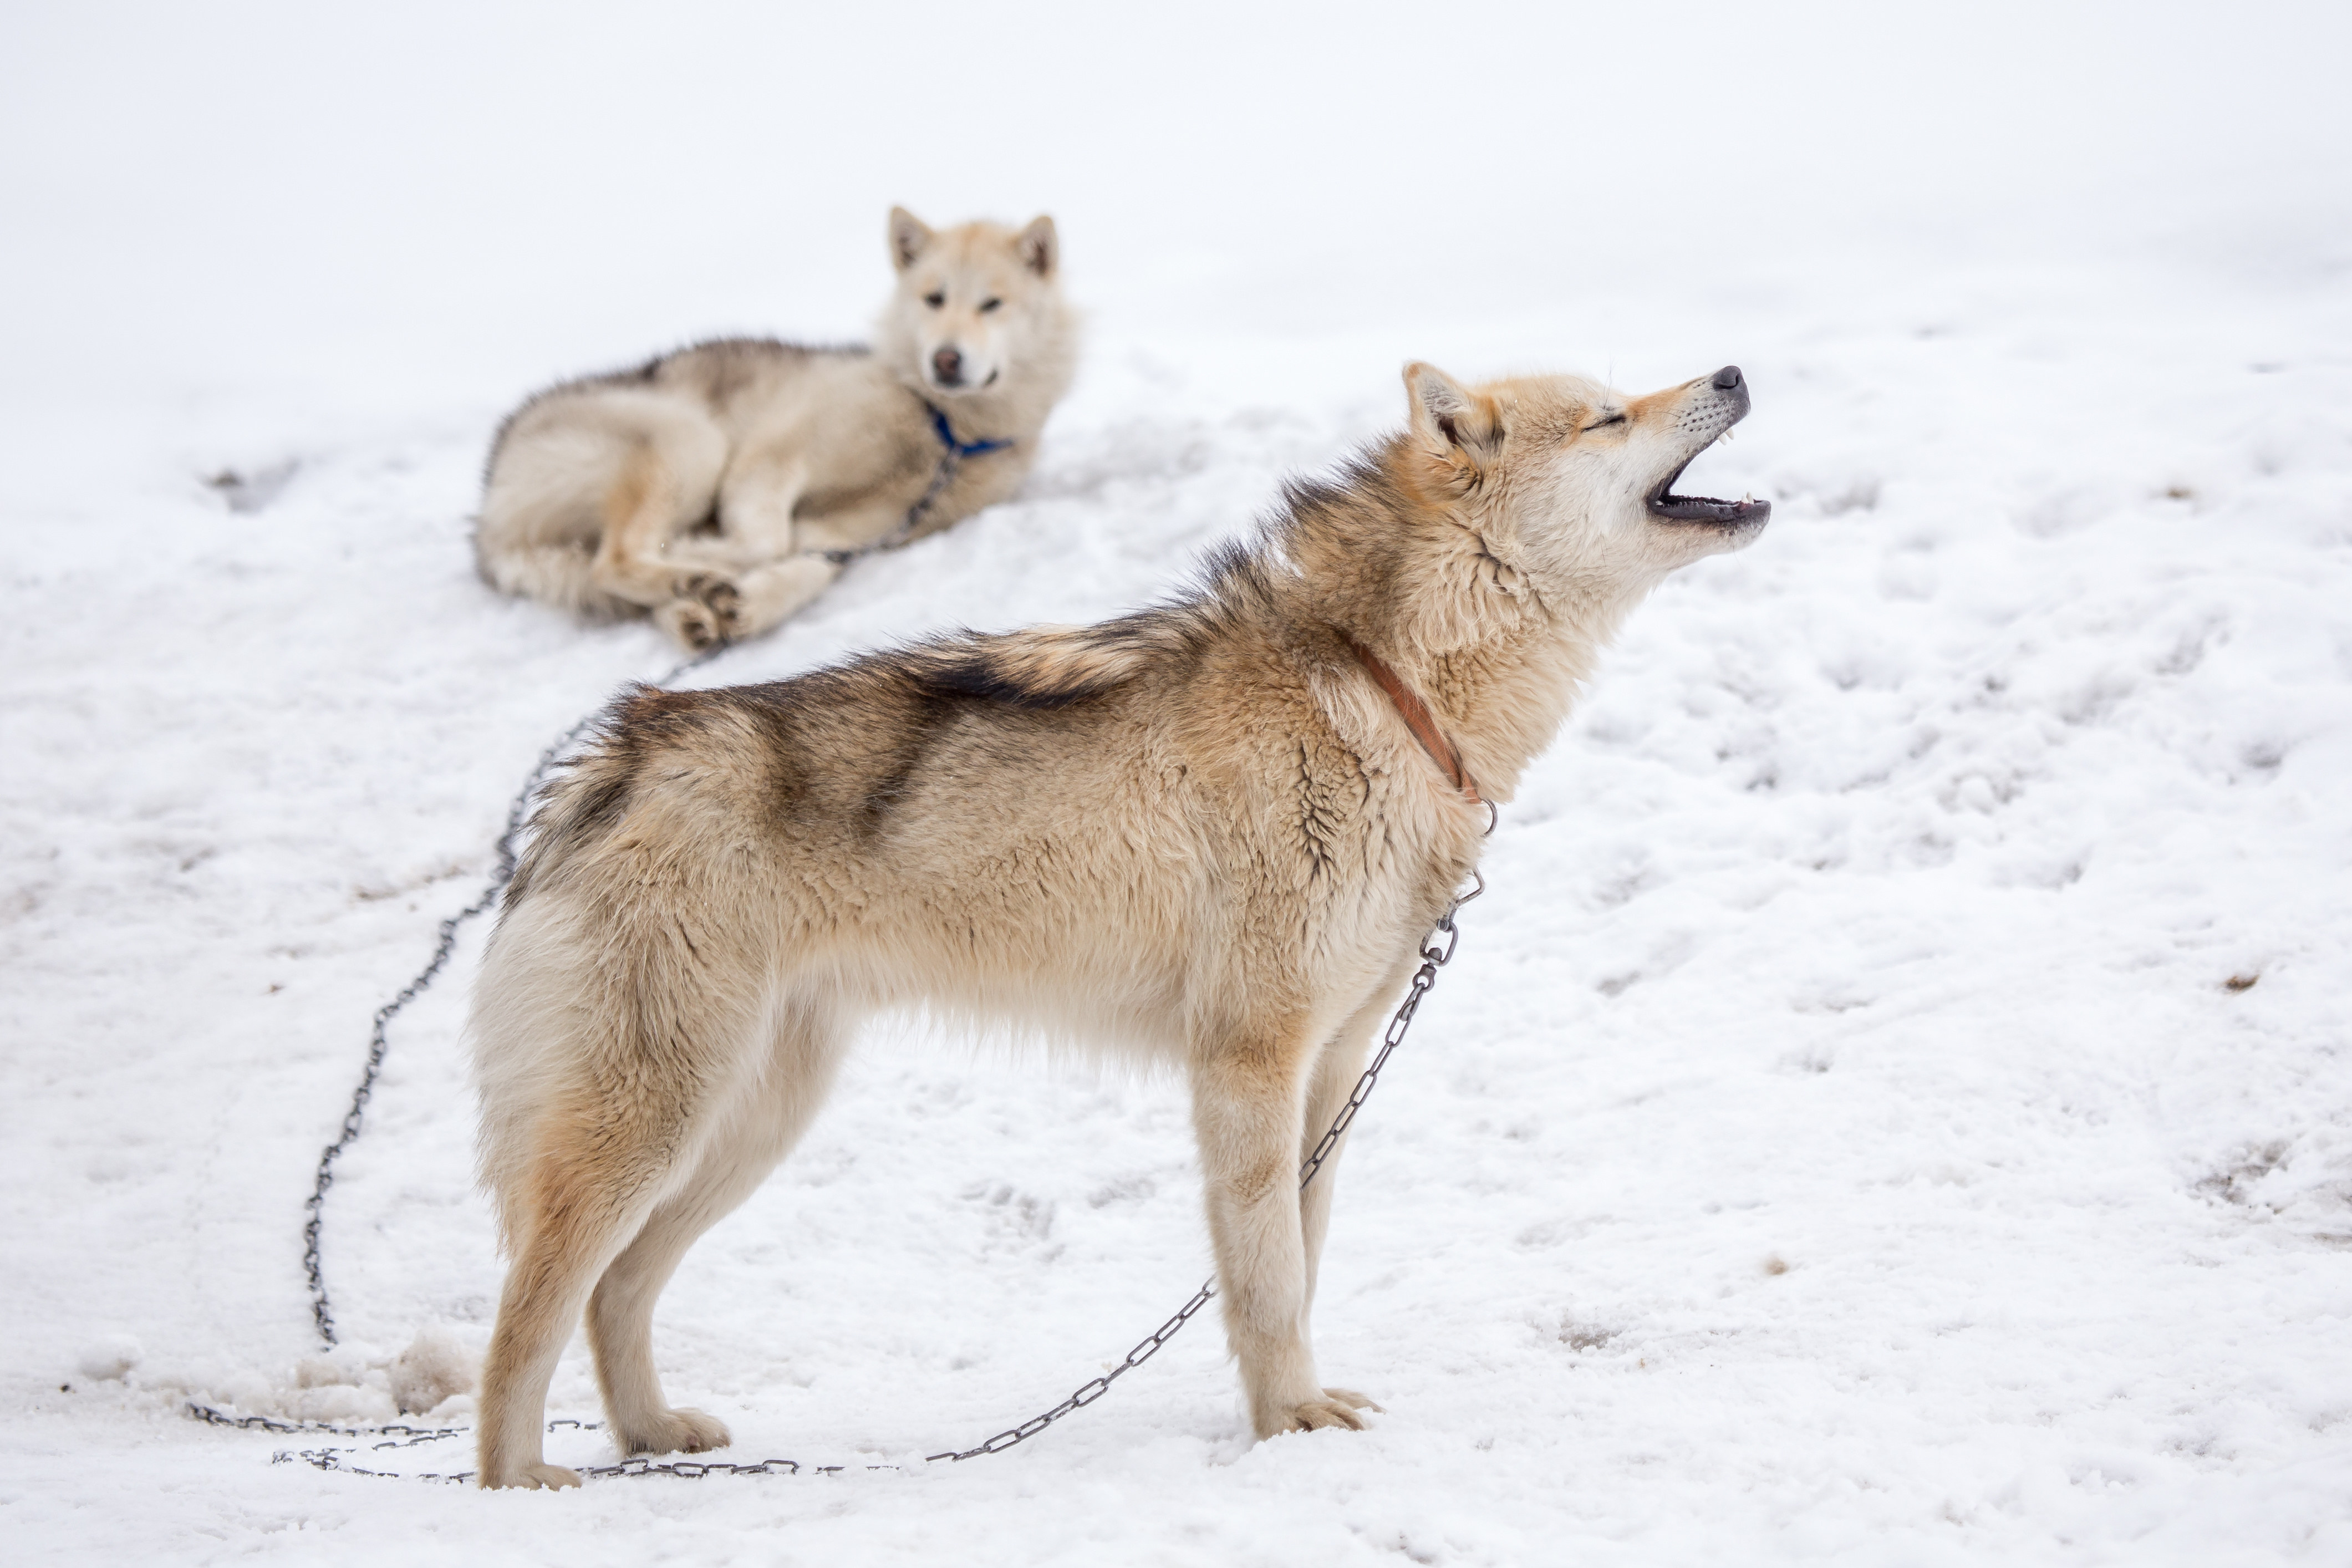 Two Greenland Sledge Dogs in the snow- one is howling and the other is lying down